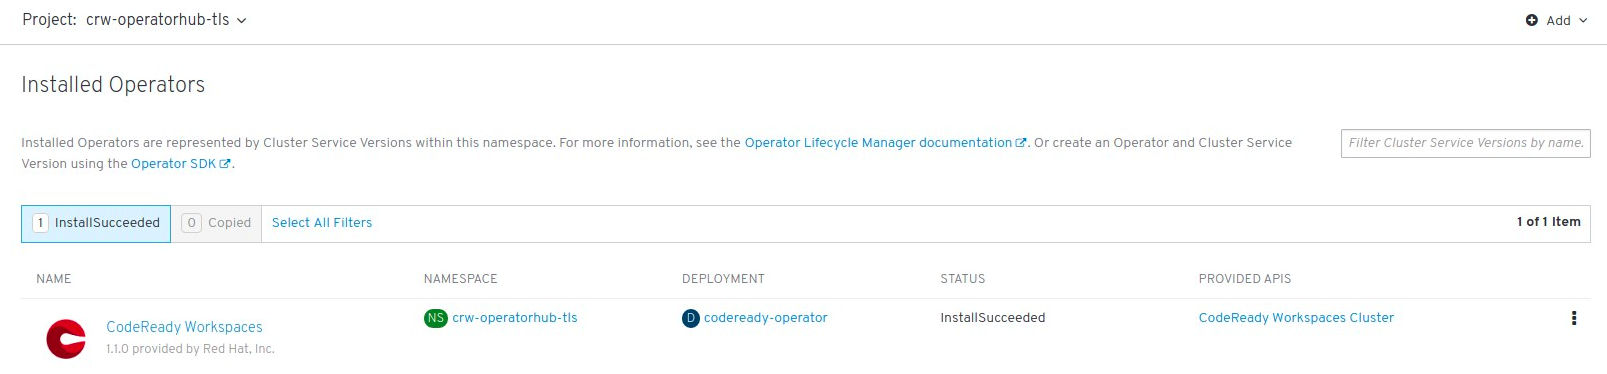 Installed Operators on OperatorHub